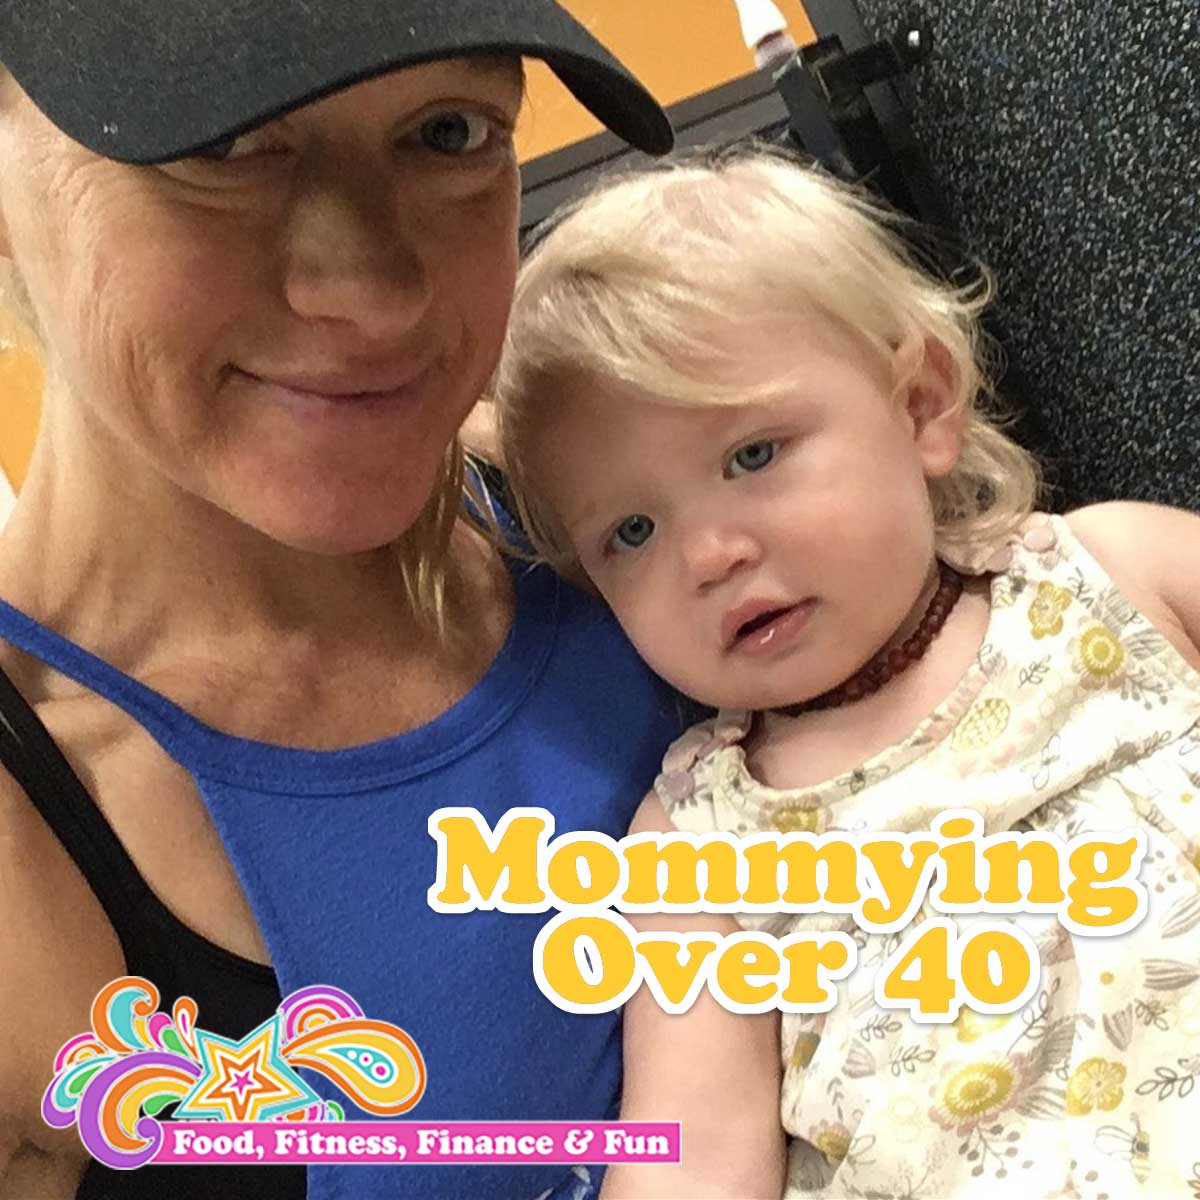 Mommying Over 40 - First Time Mother At 45